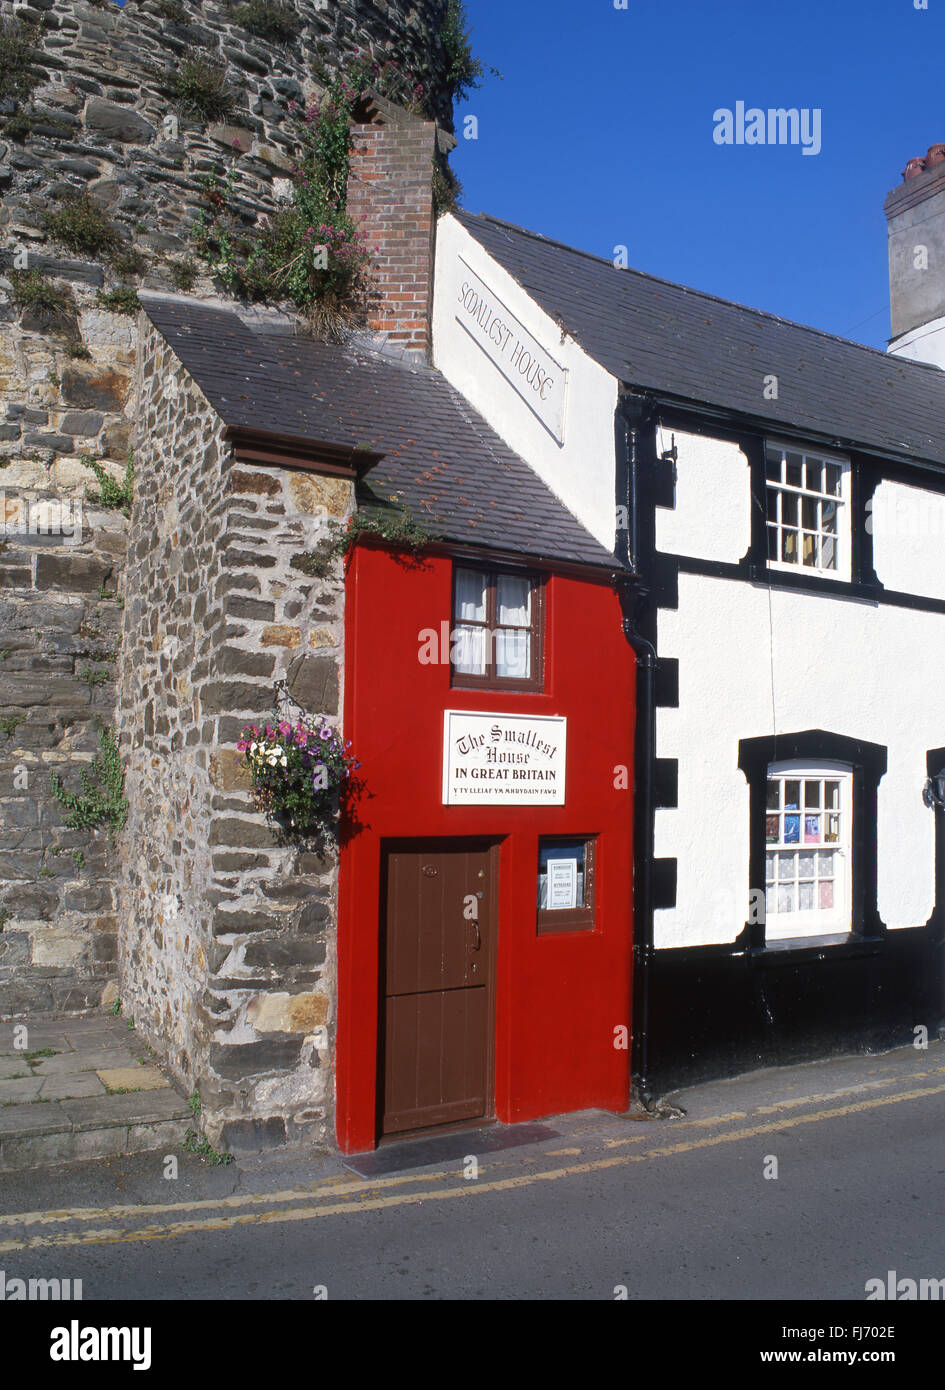 Smallest House in Great Britain on Conwy Quay Conwy North Wales UK - Stock Image